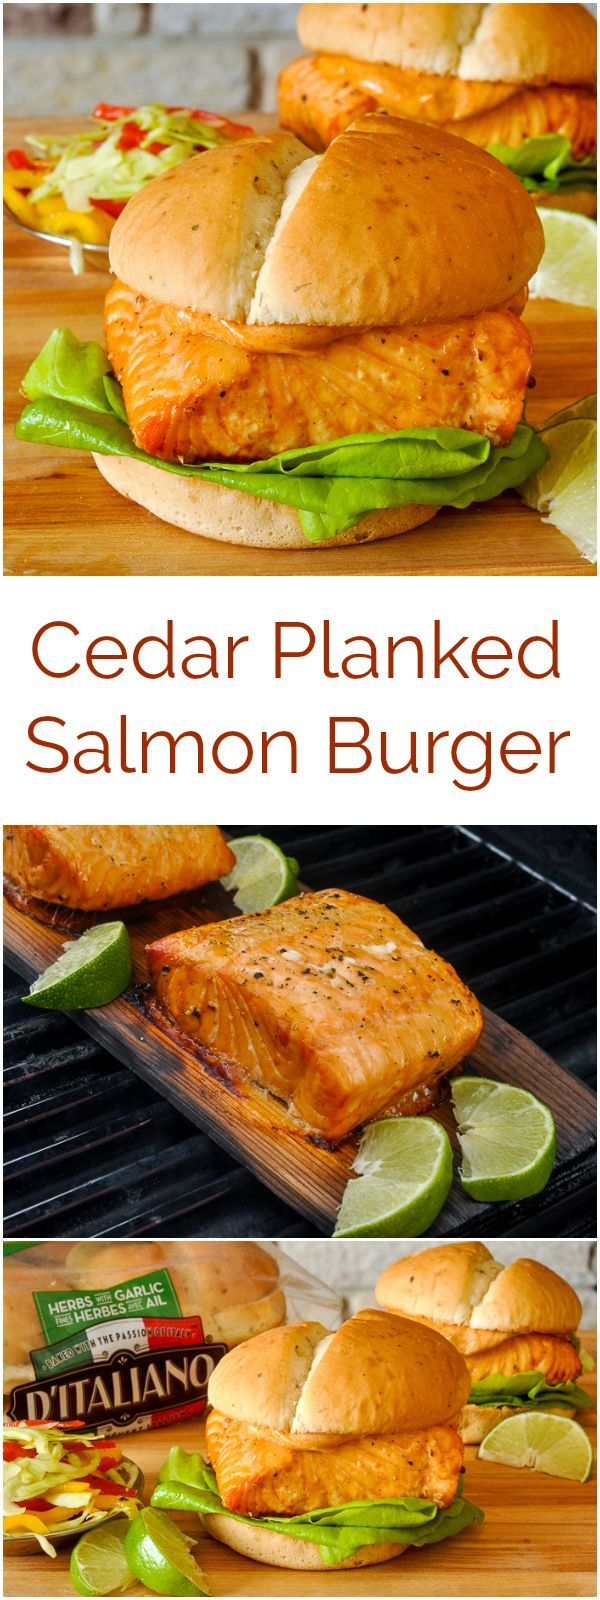 Cedar Planked Salmon Burger – Healthier eating made deliciously easy with cedar plank smoked salmon on D'Italiano Herb & Garlic Hamburger Buns. #sponsored